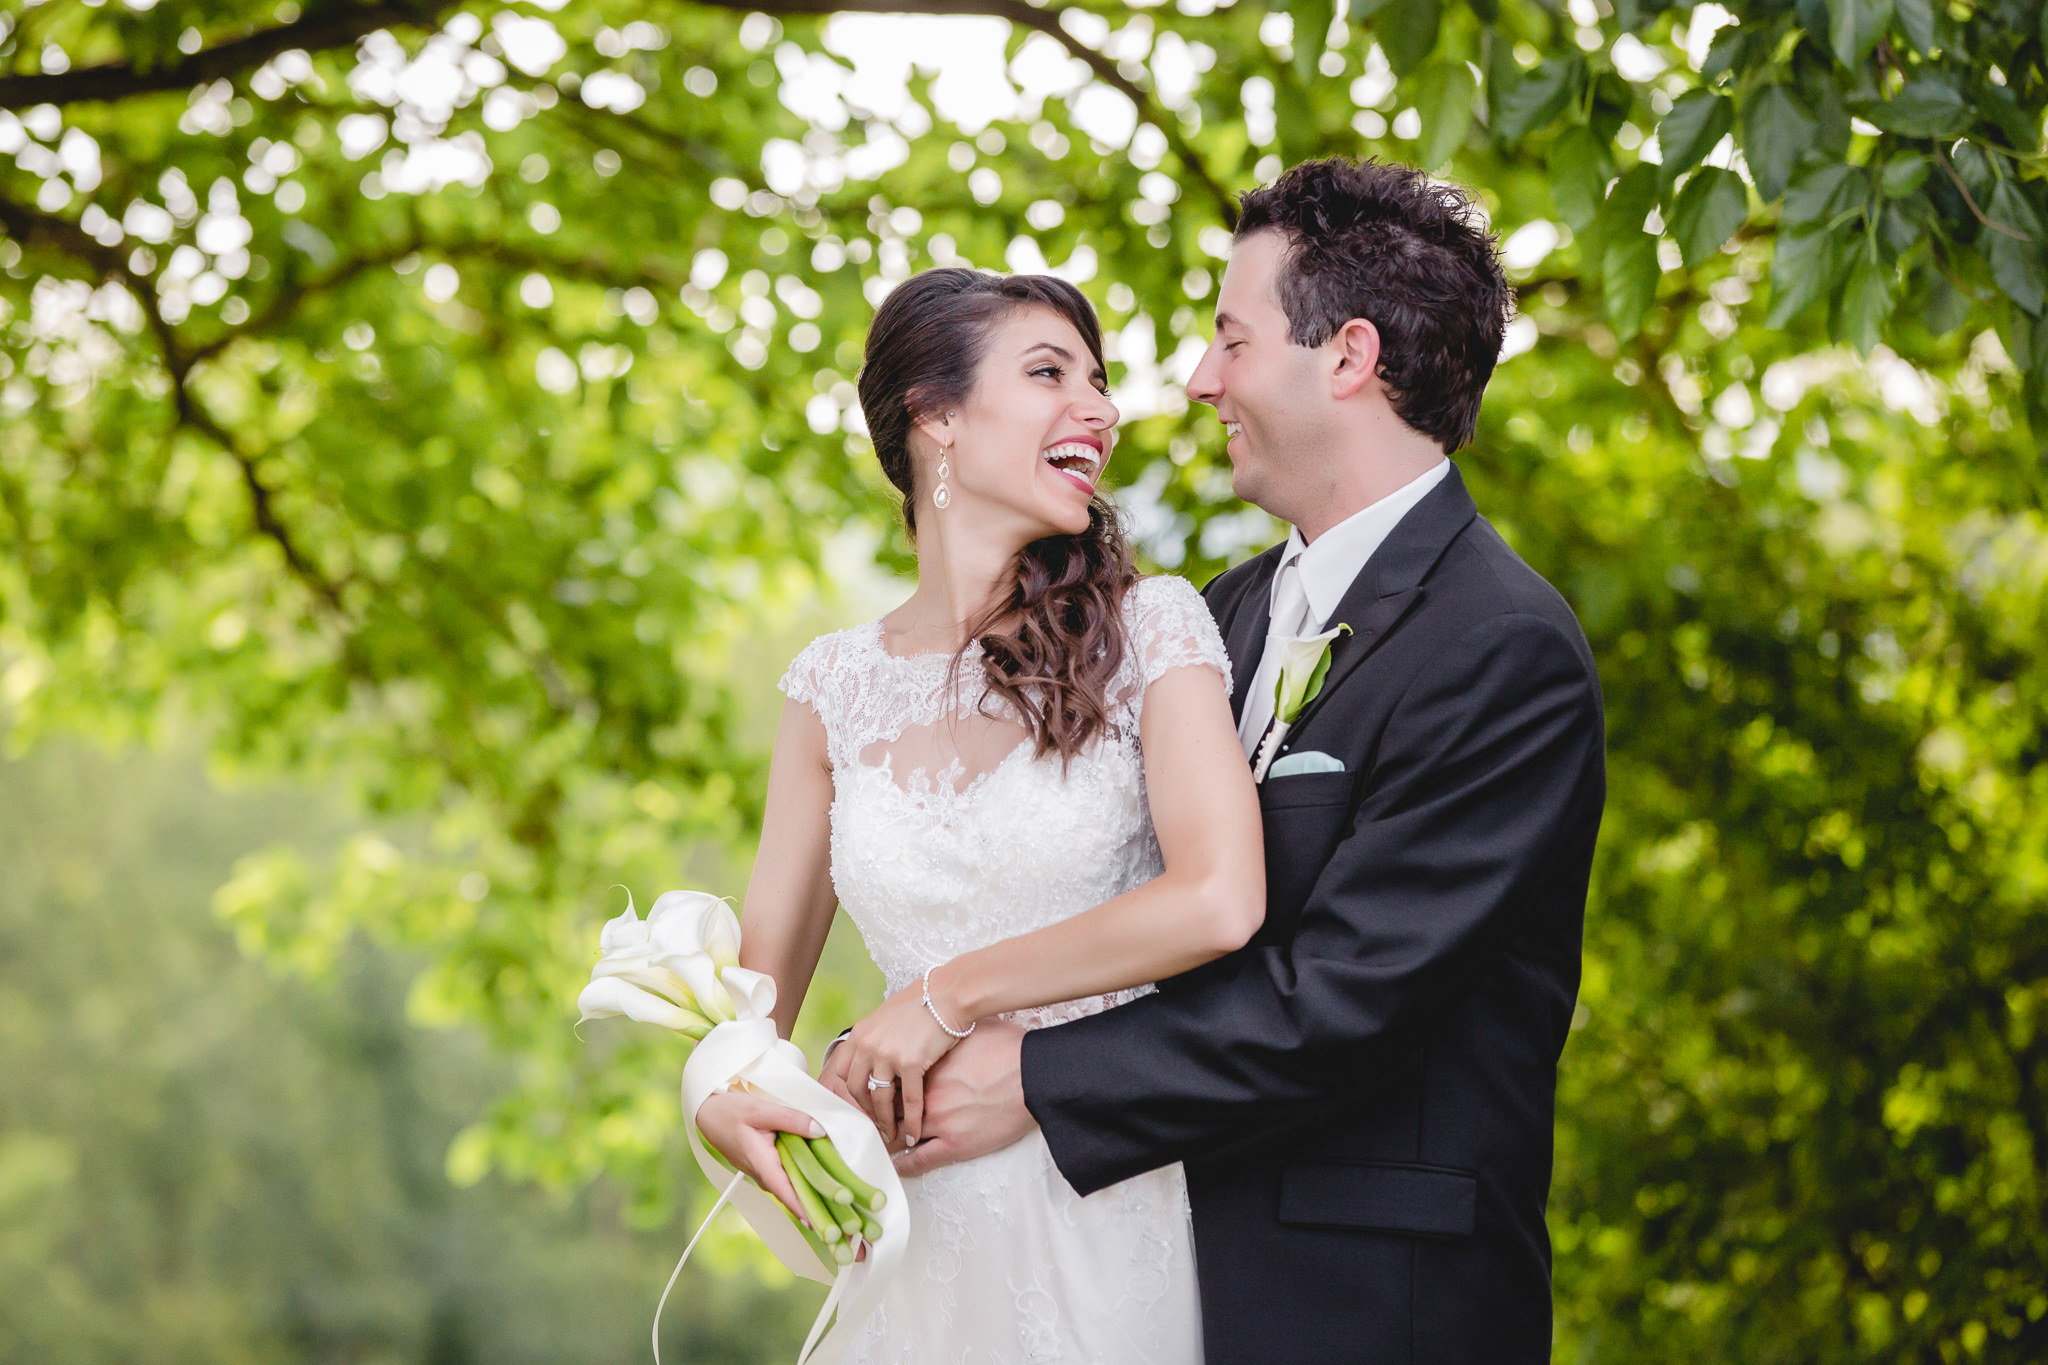 Bride laughs with her groom during photos at Greystone Fields